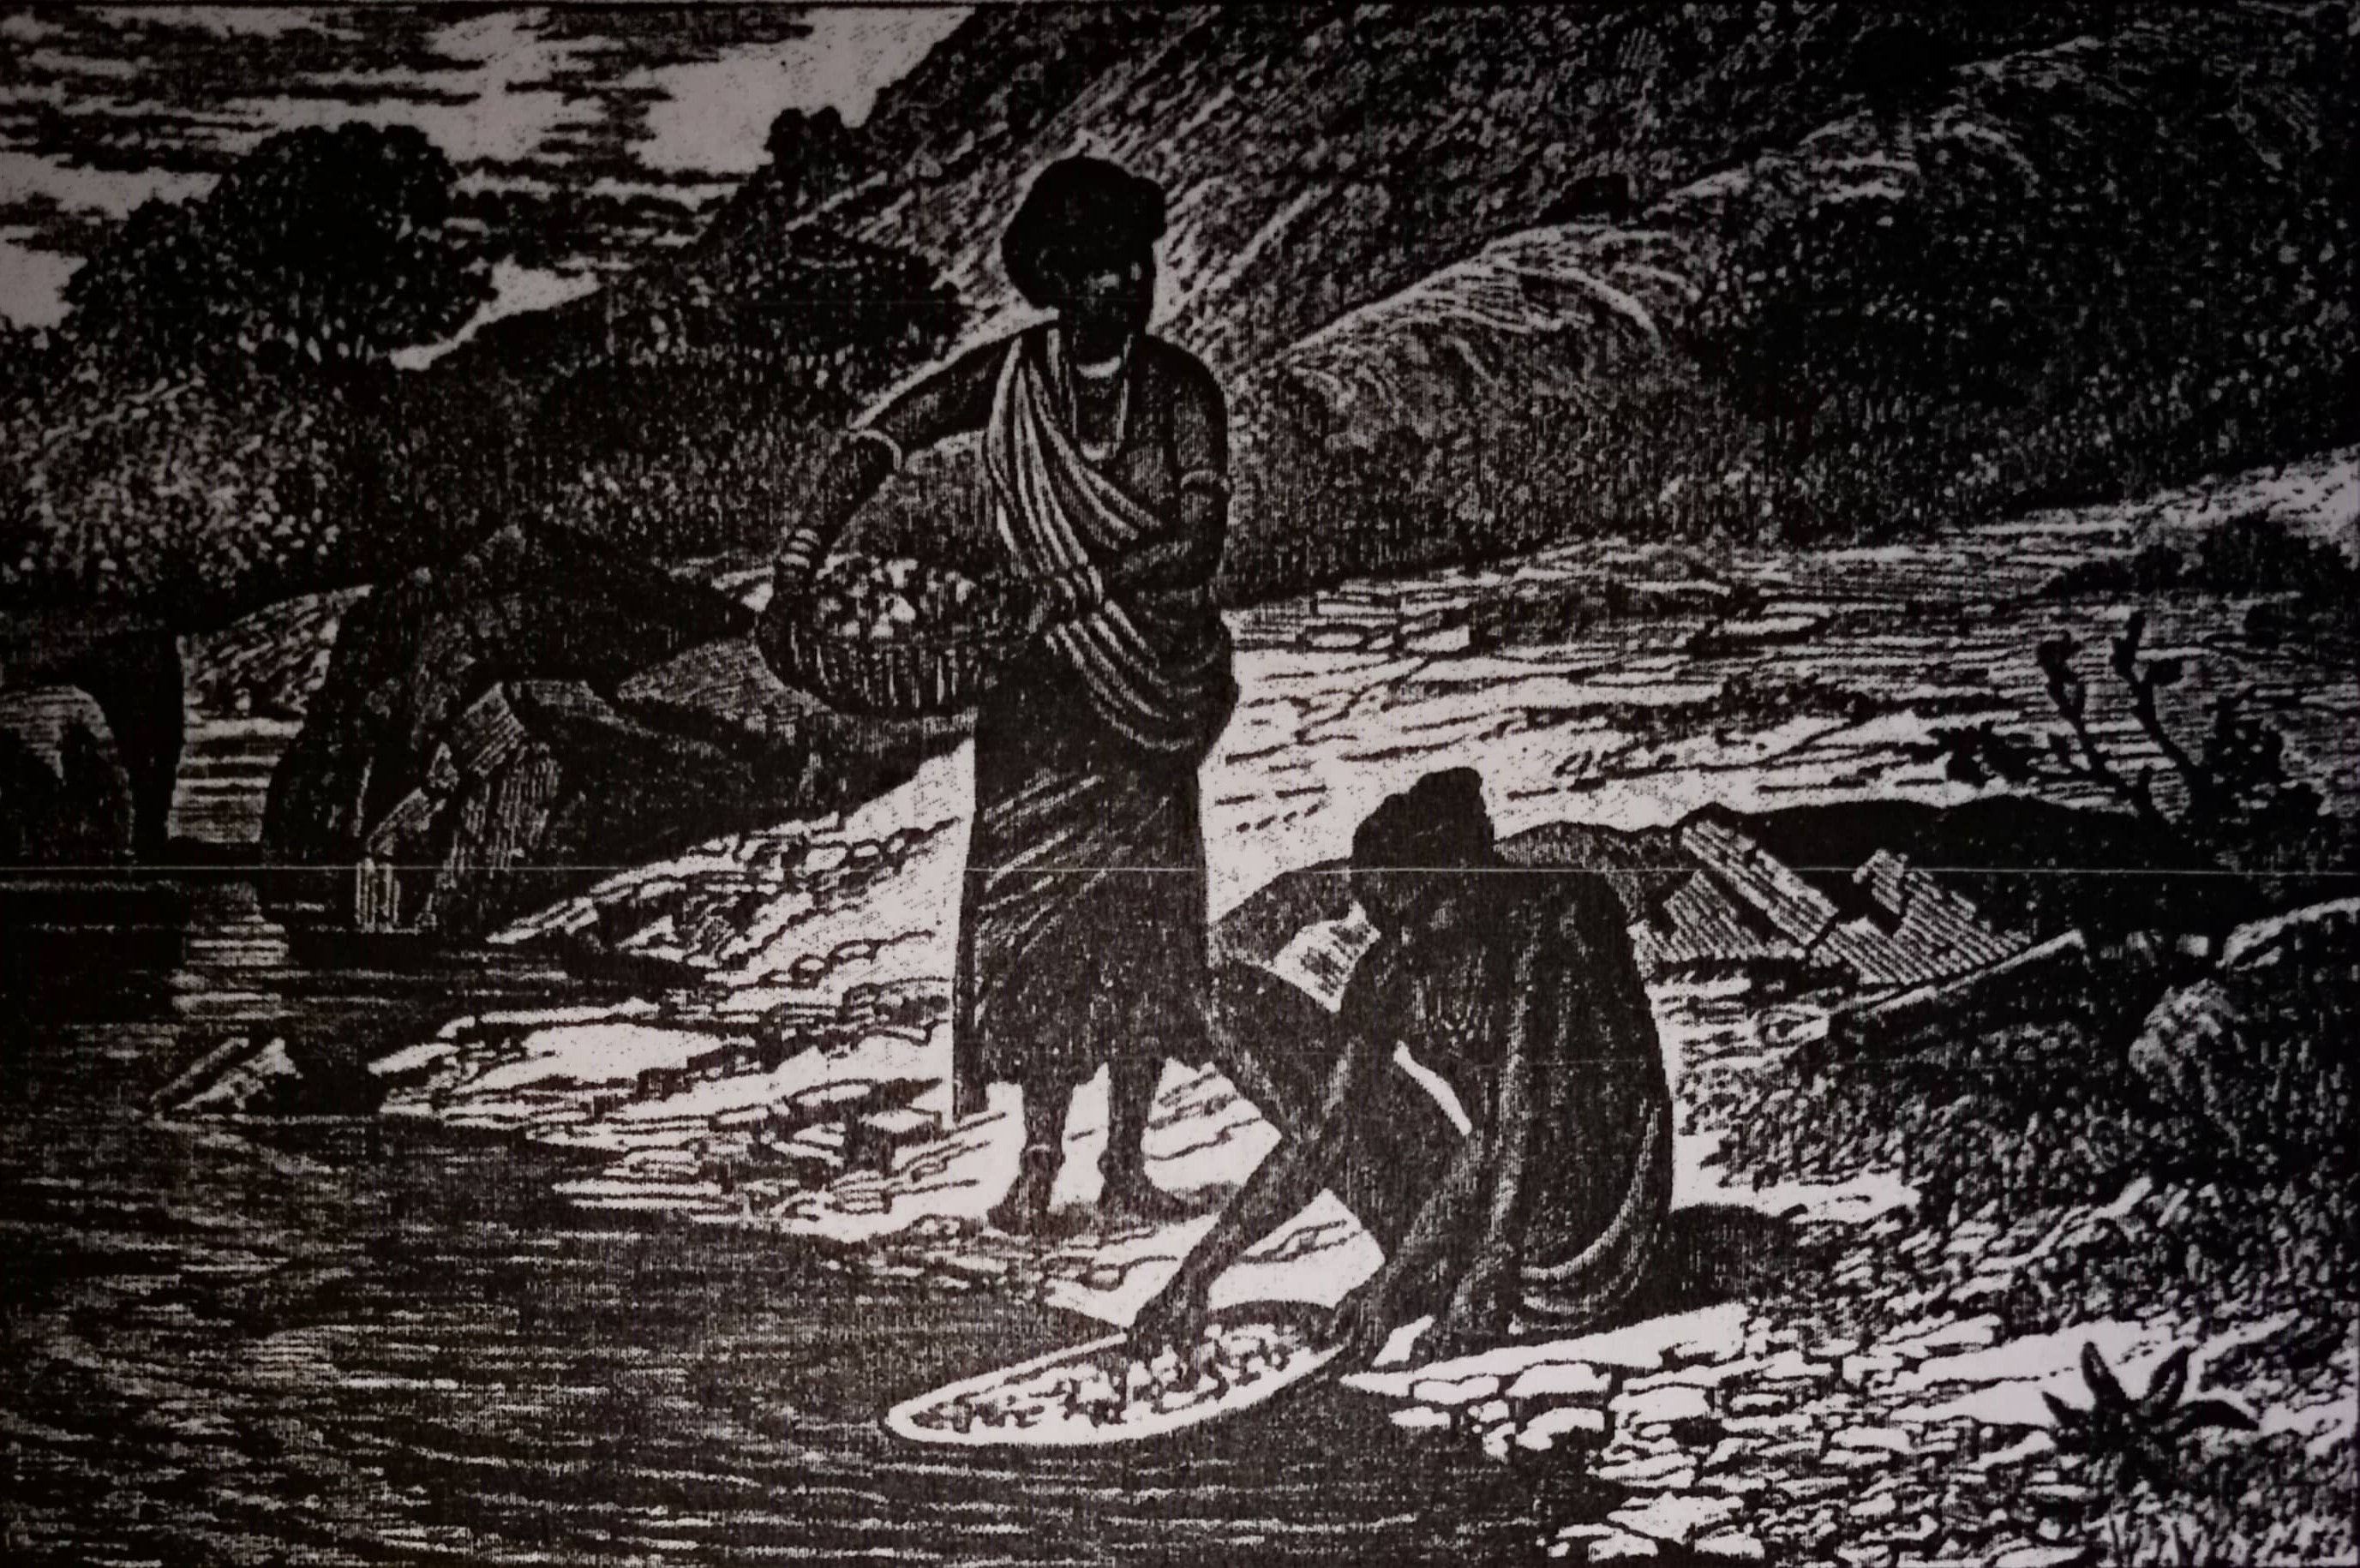 An illustration of locals panning for gold dust. Credit: Lock (1882)